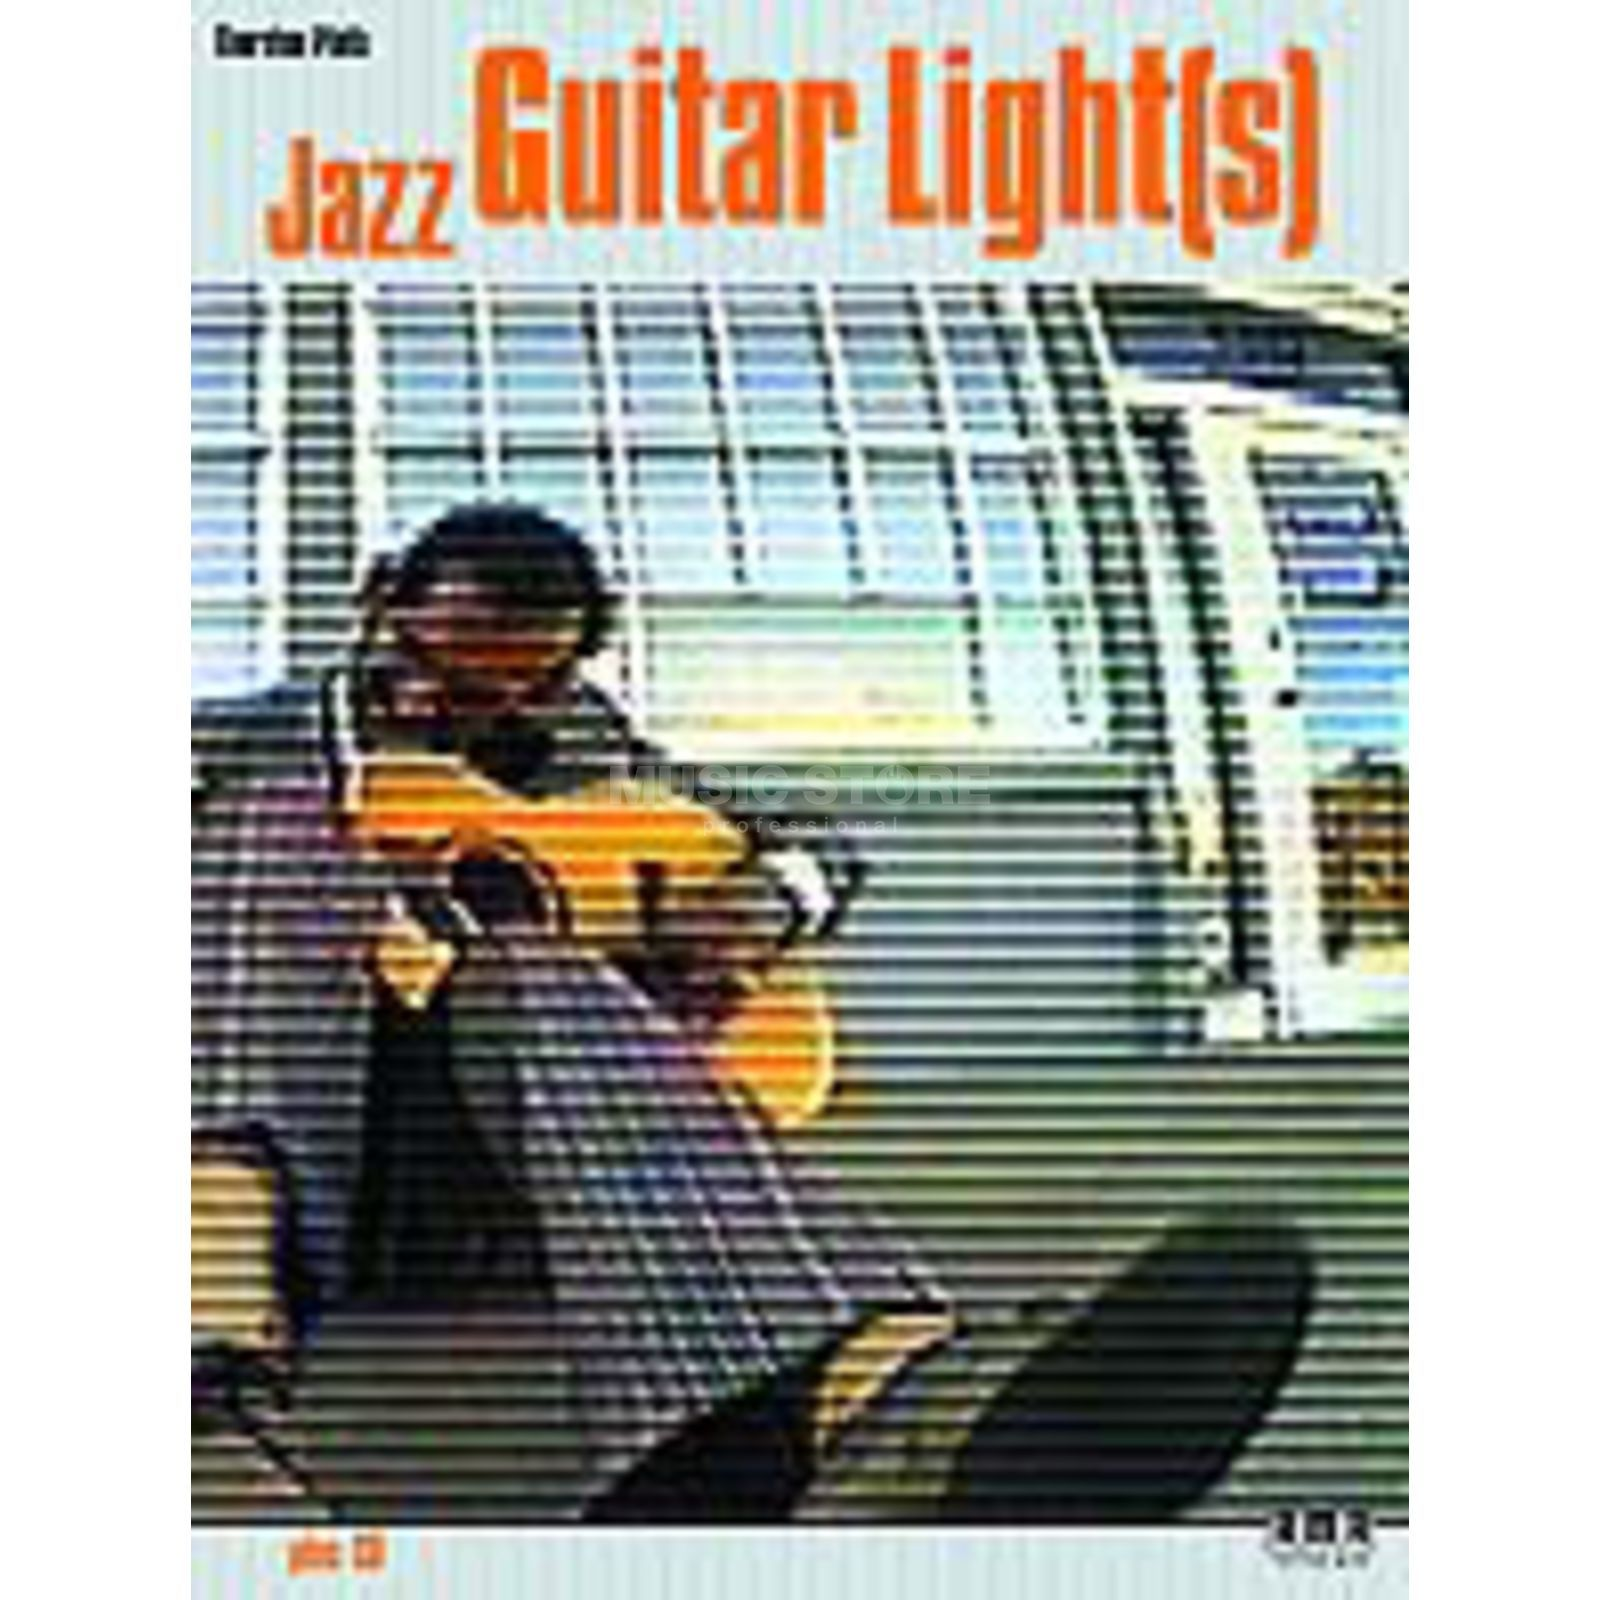 AMA Verlag Jazz Guitar Light Thorsten Plath Produktbillede